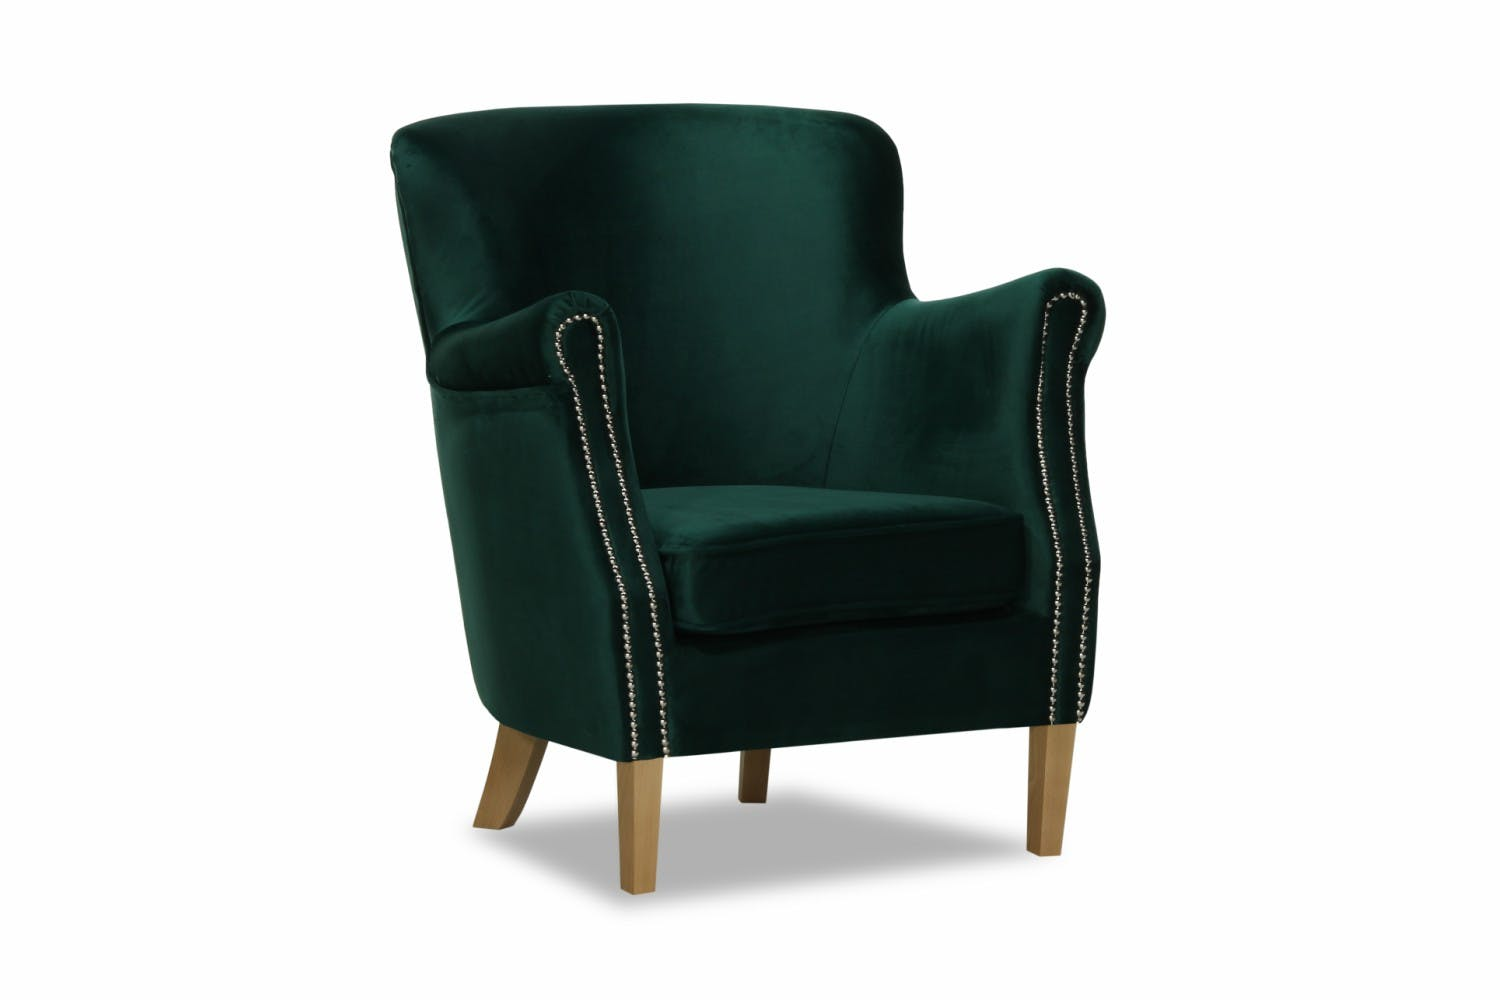 Lincoln bedroom chair arm velvet green ireland for Small bedroom chairs with arms